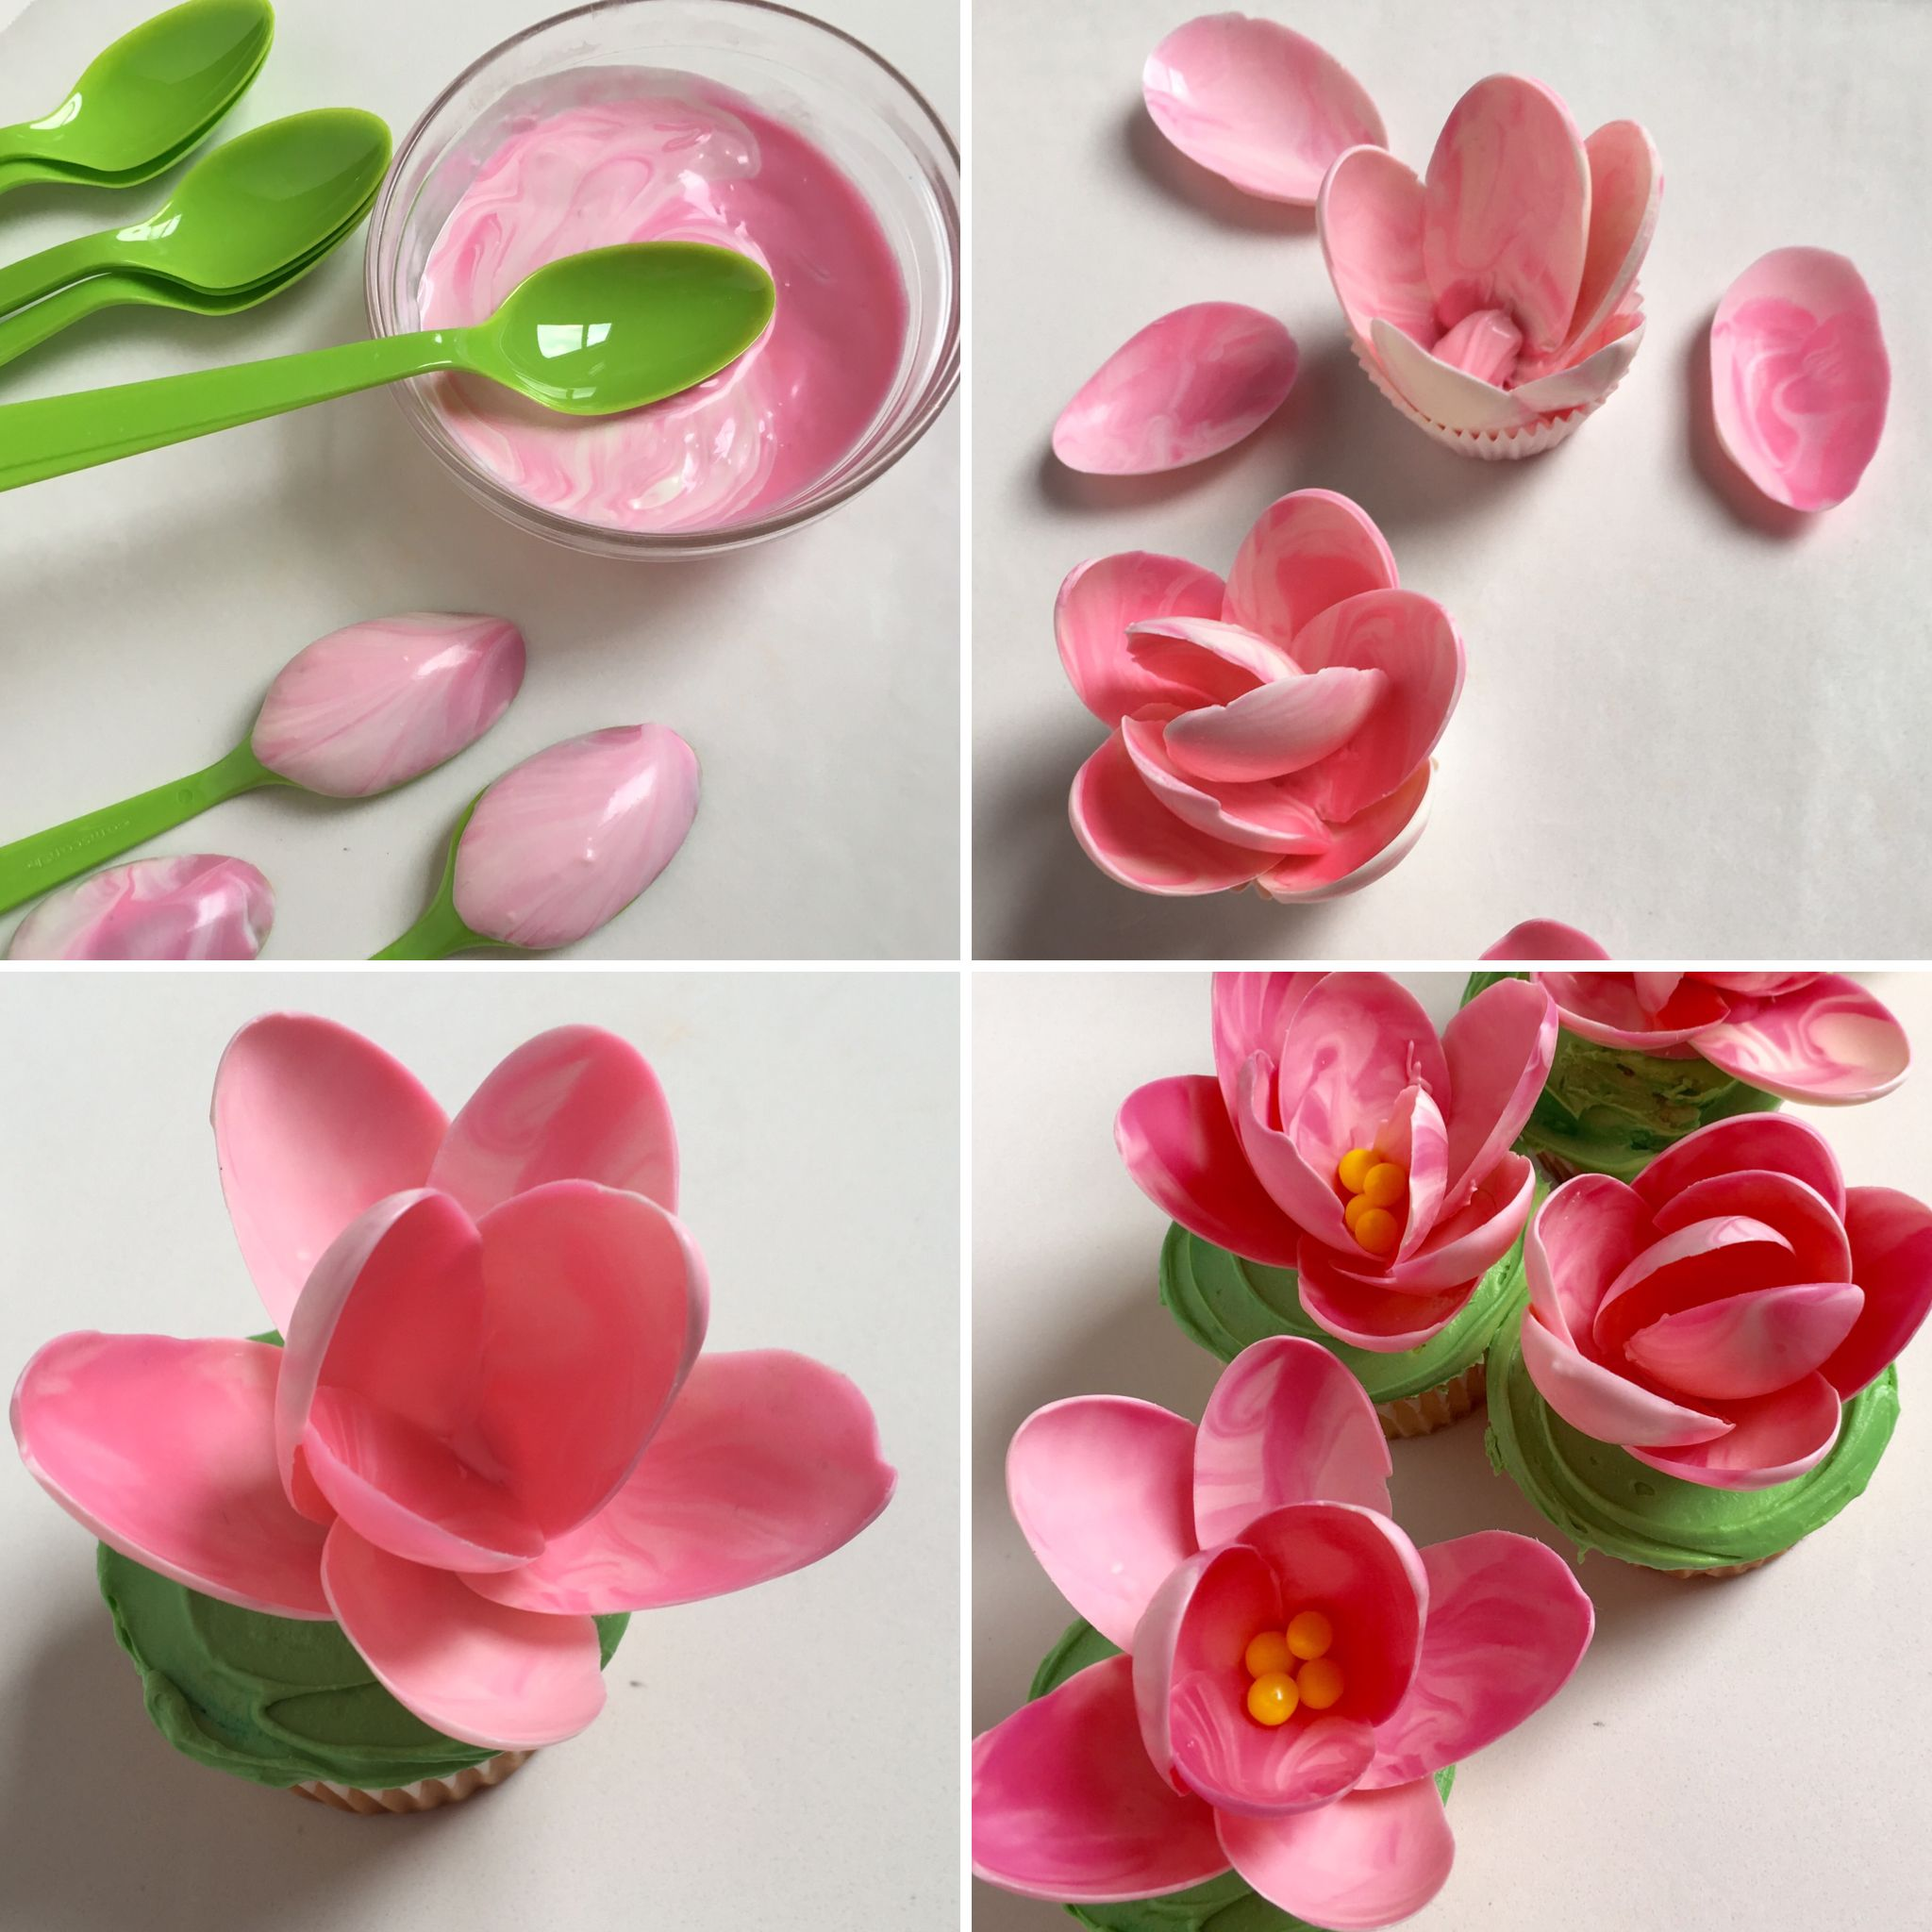 Making Pink Chocolate Magnolia Cupcakes Using Plastic Spoons From